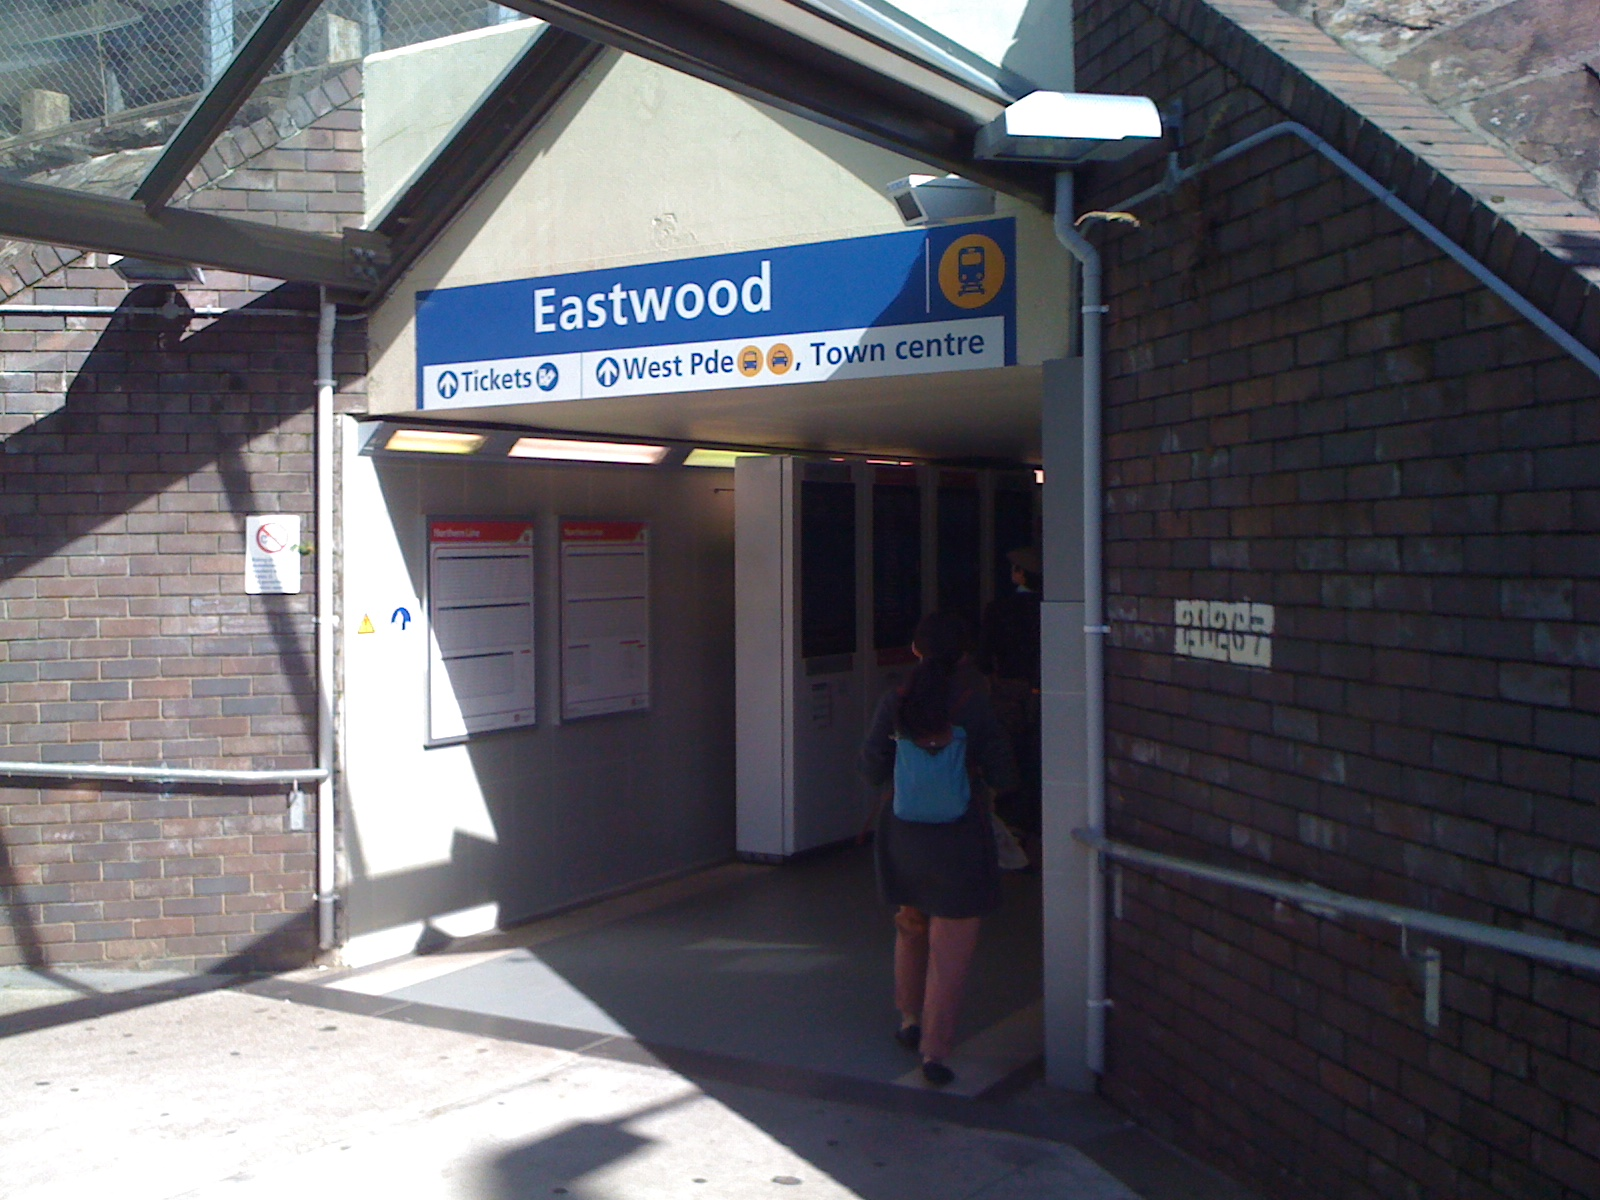 Eastwood Station, on the northern line south of Epping.